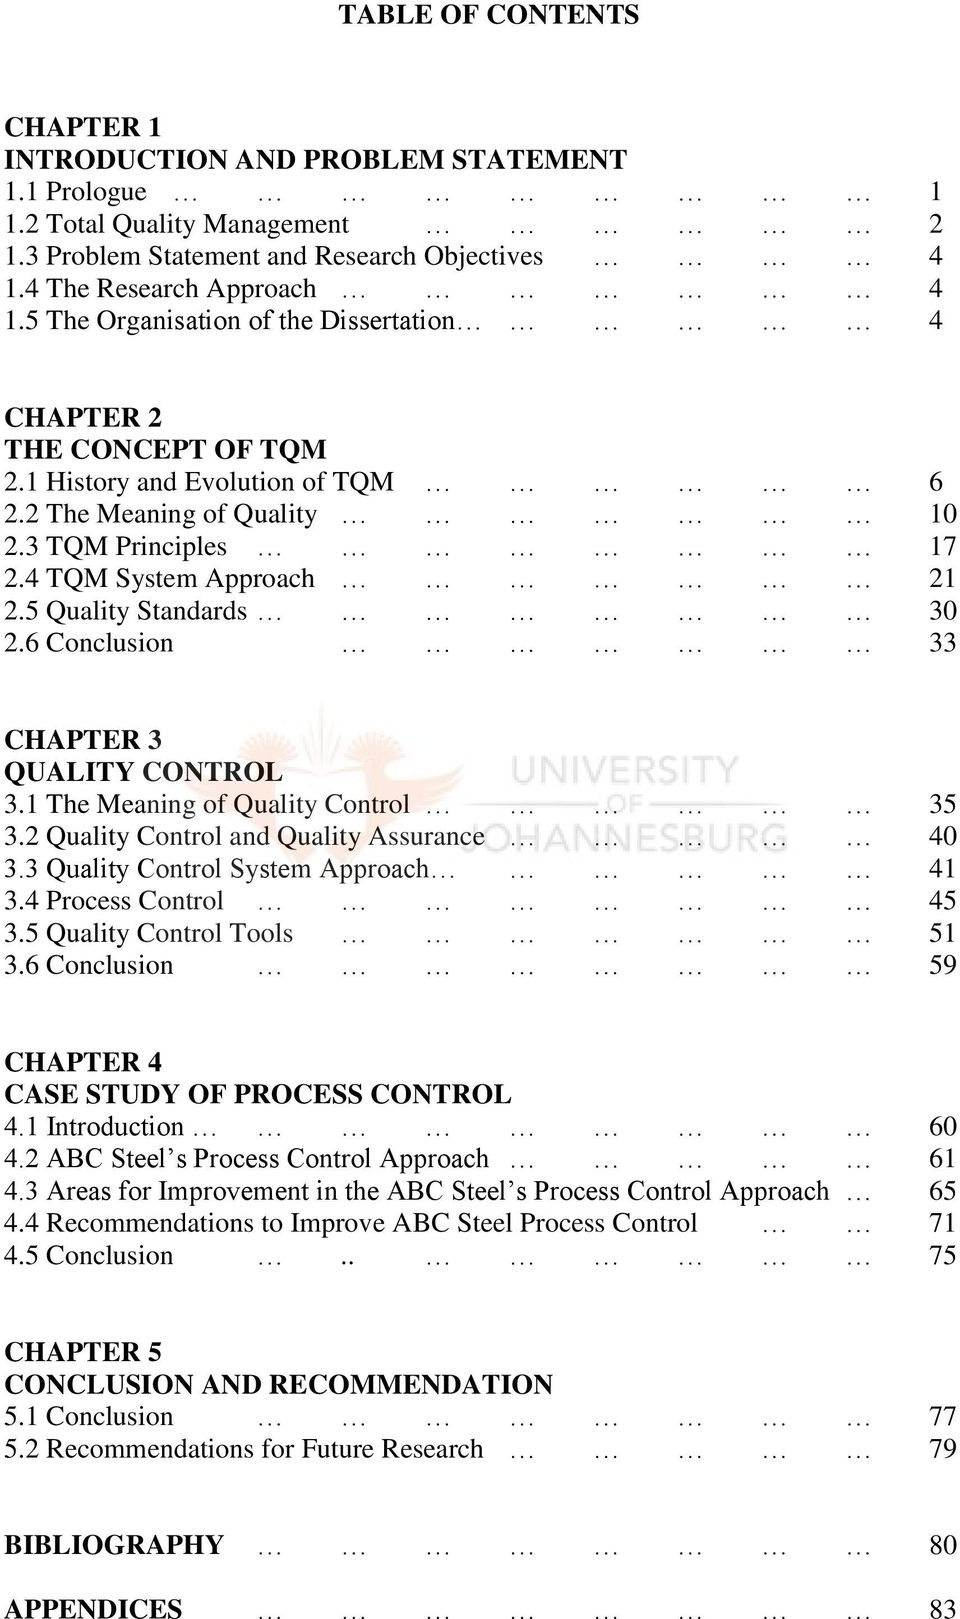 a case study of total quality management in a manufacturing and 5 quality standards 30 2 6 conclusion 33 chapter 3 quality control 3 1 the meaning of quality